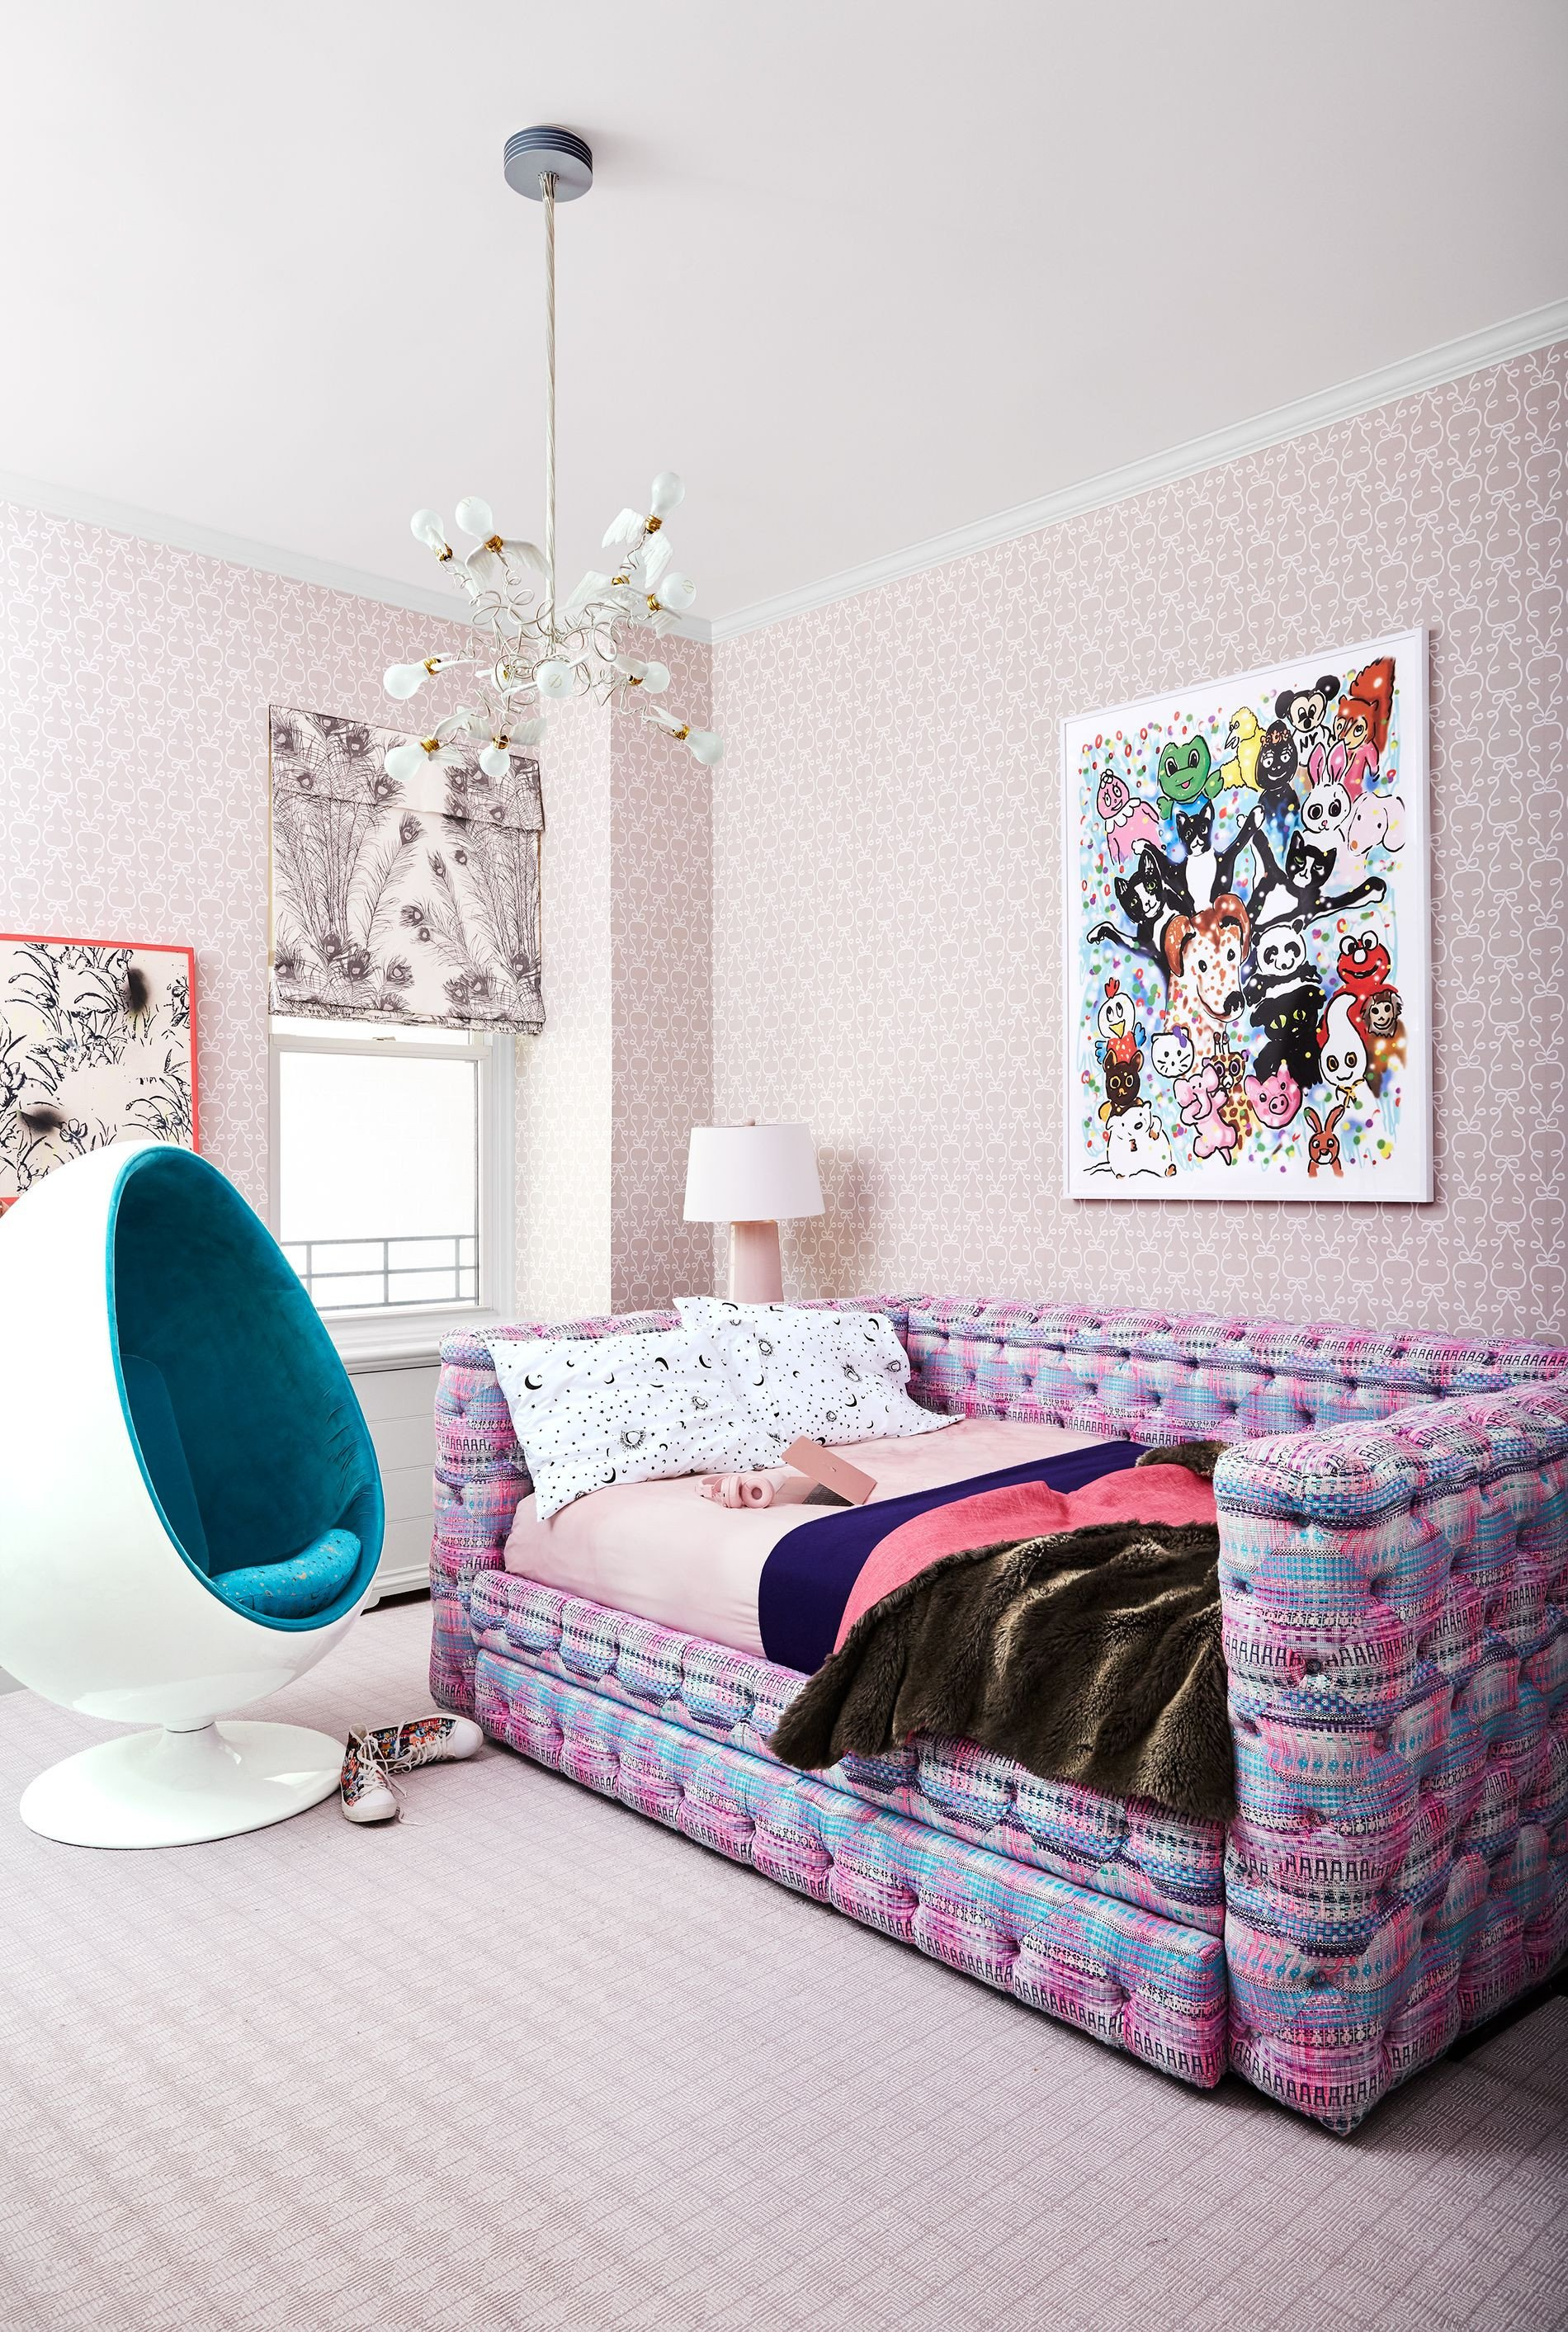 10 Year Old Boy Bedroom Ideas Best Of 55 Kids Room Design Ideas Cool Kids Bedroom Decor and Style